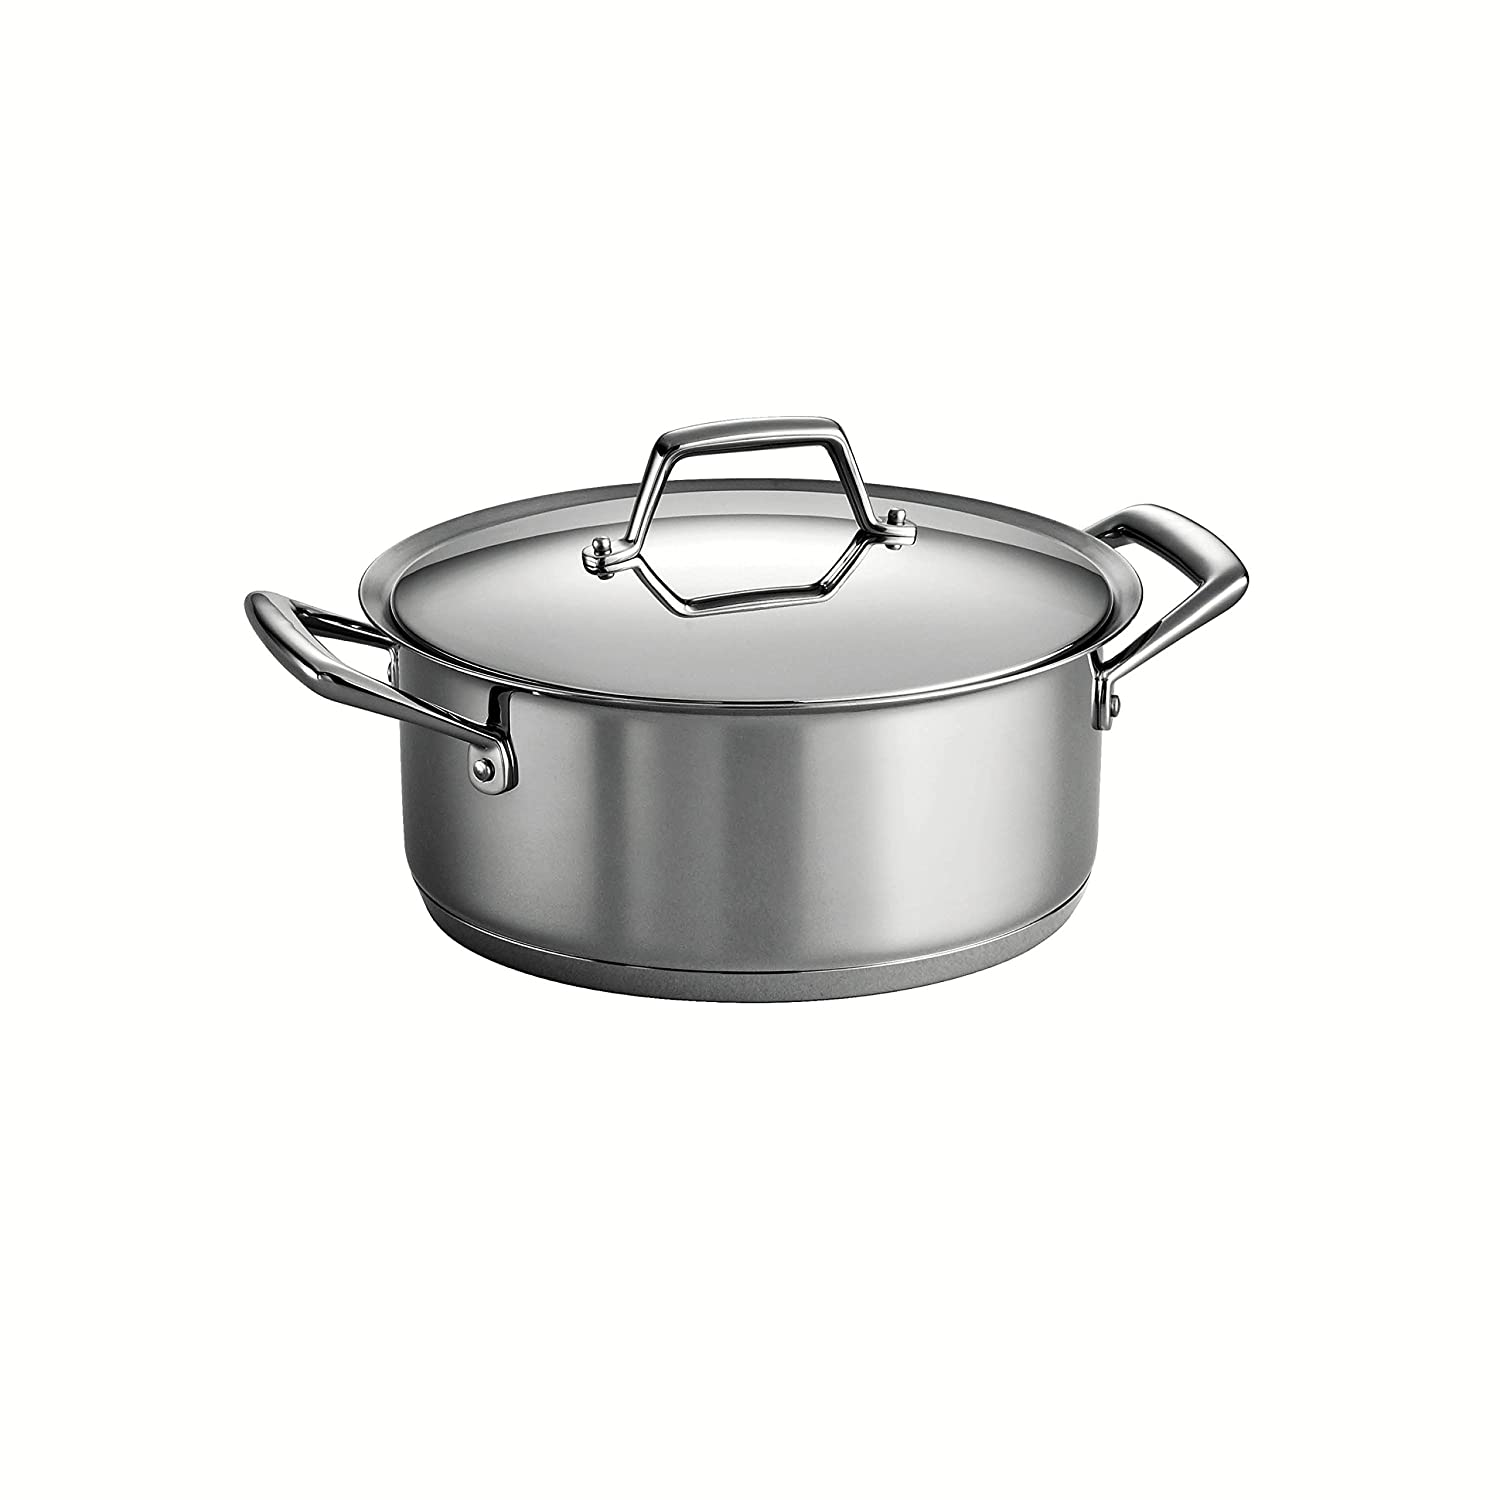 Amazon.com: Tramontina Gourmet Prima 18/10 Stainless Steel Tri-Ply ...